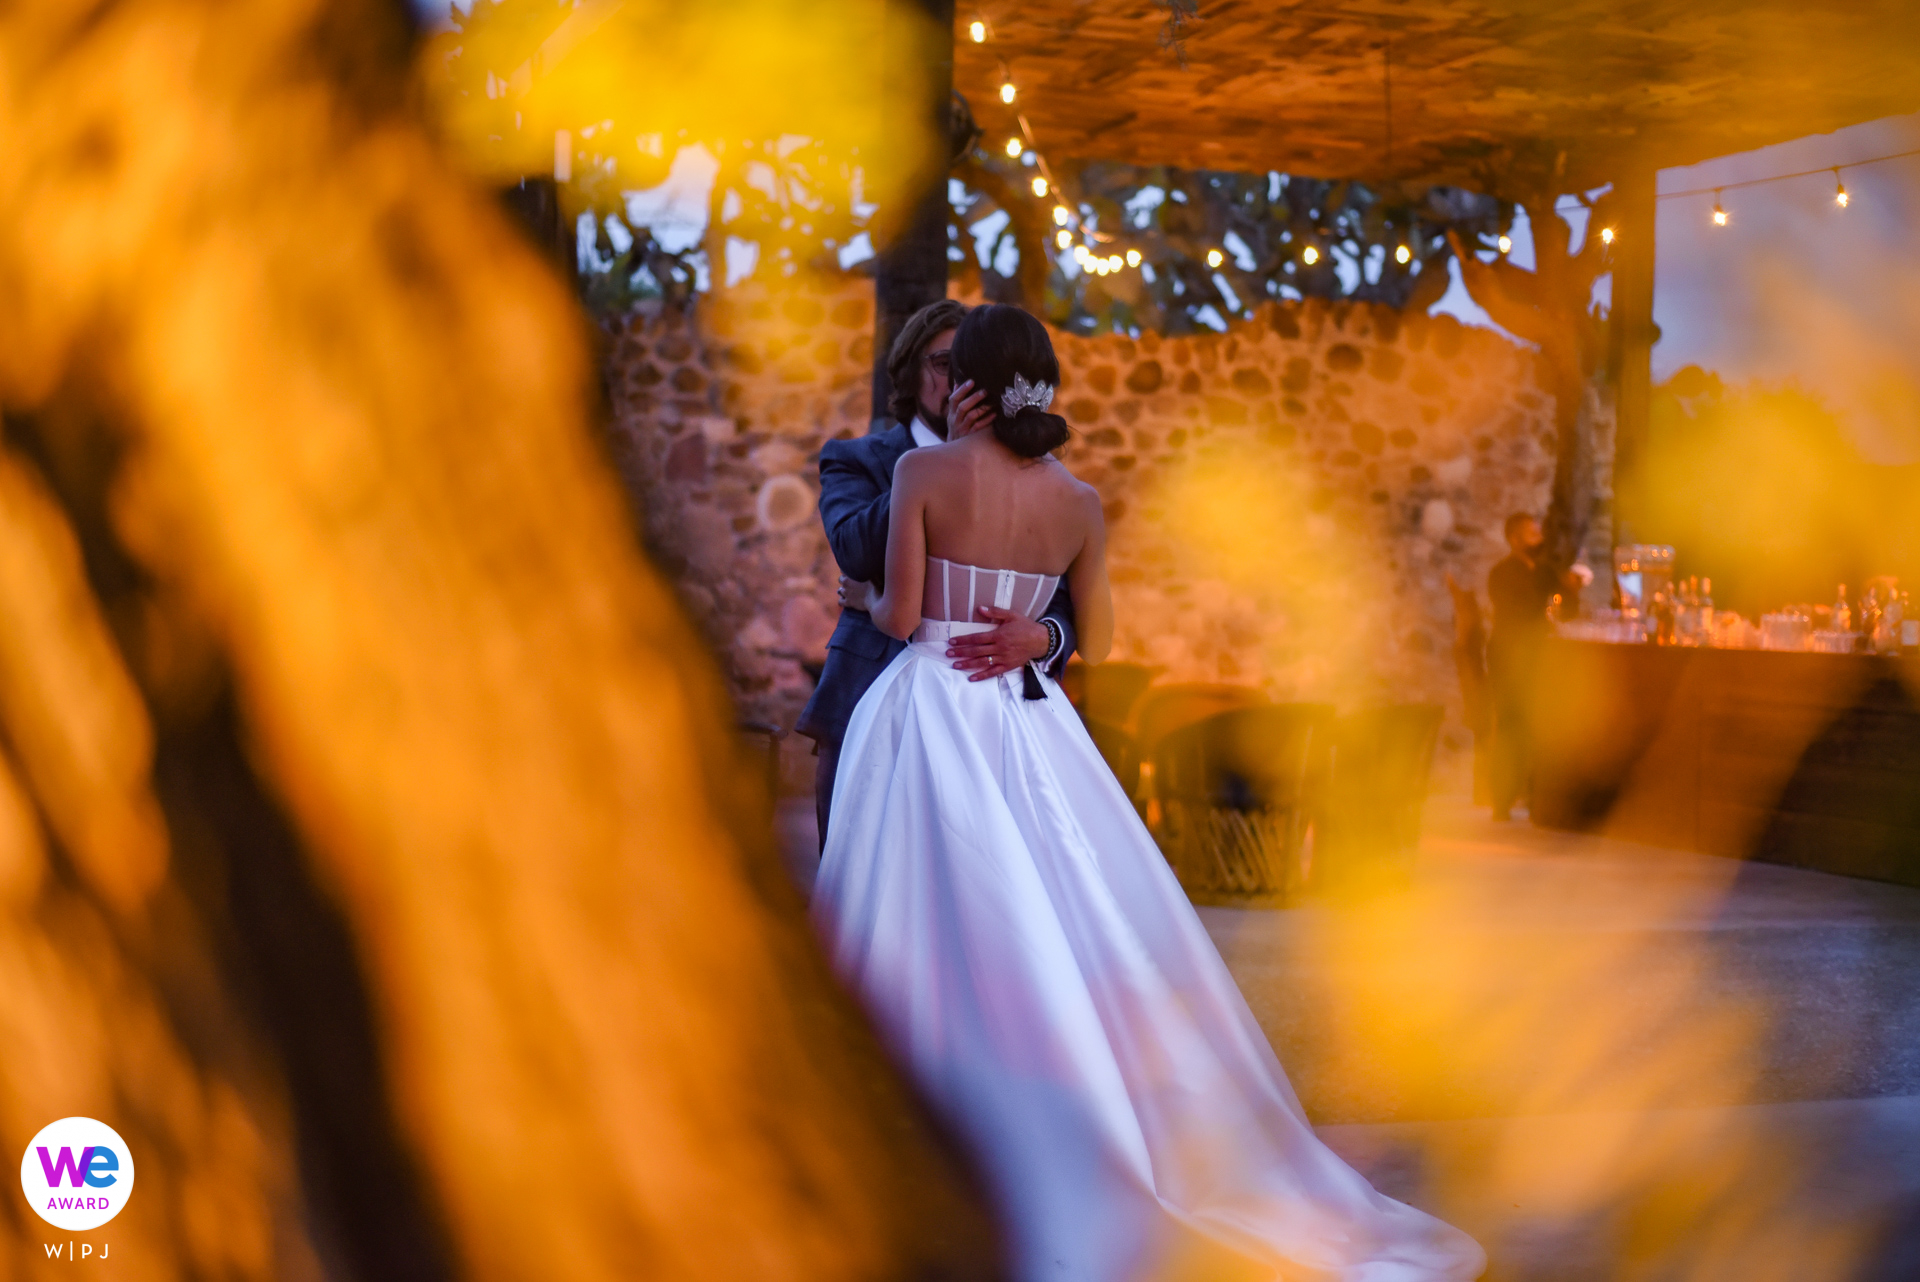 Wedding Venue Photography With sparkling fairy lights serving as a frame for the moment, the bride and groom share a passionate kiss